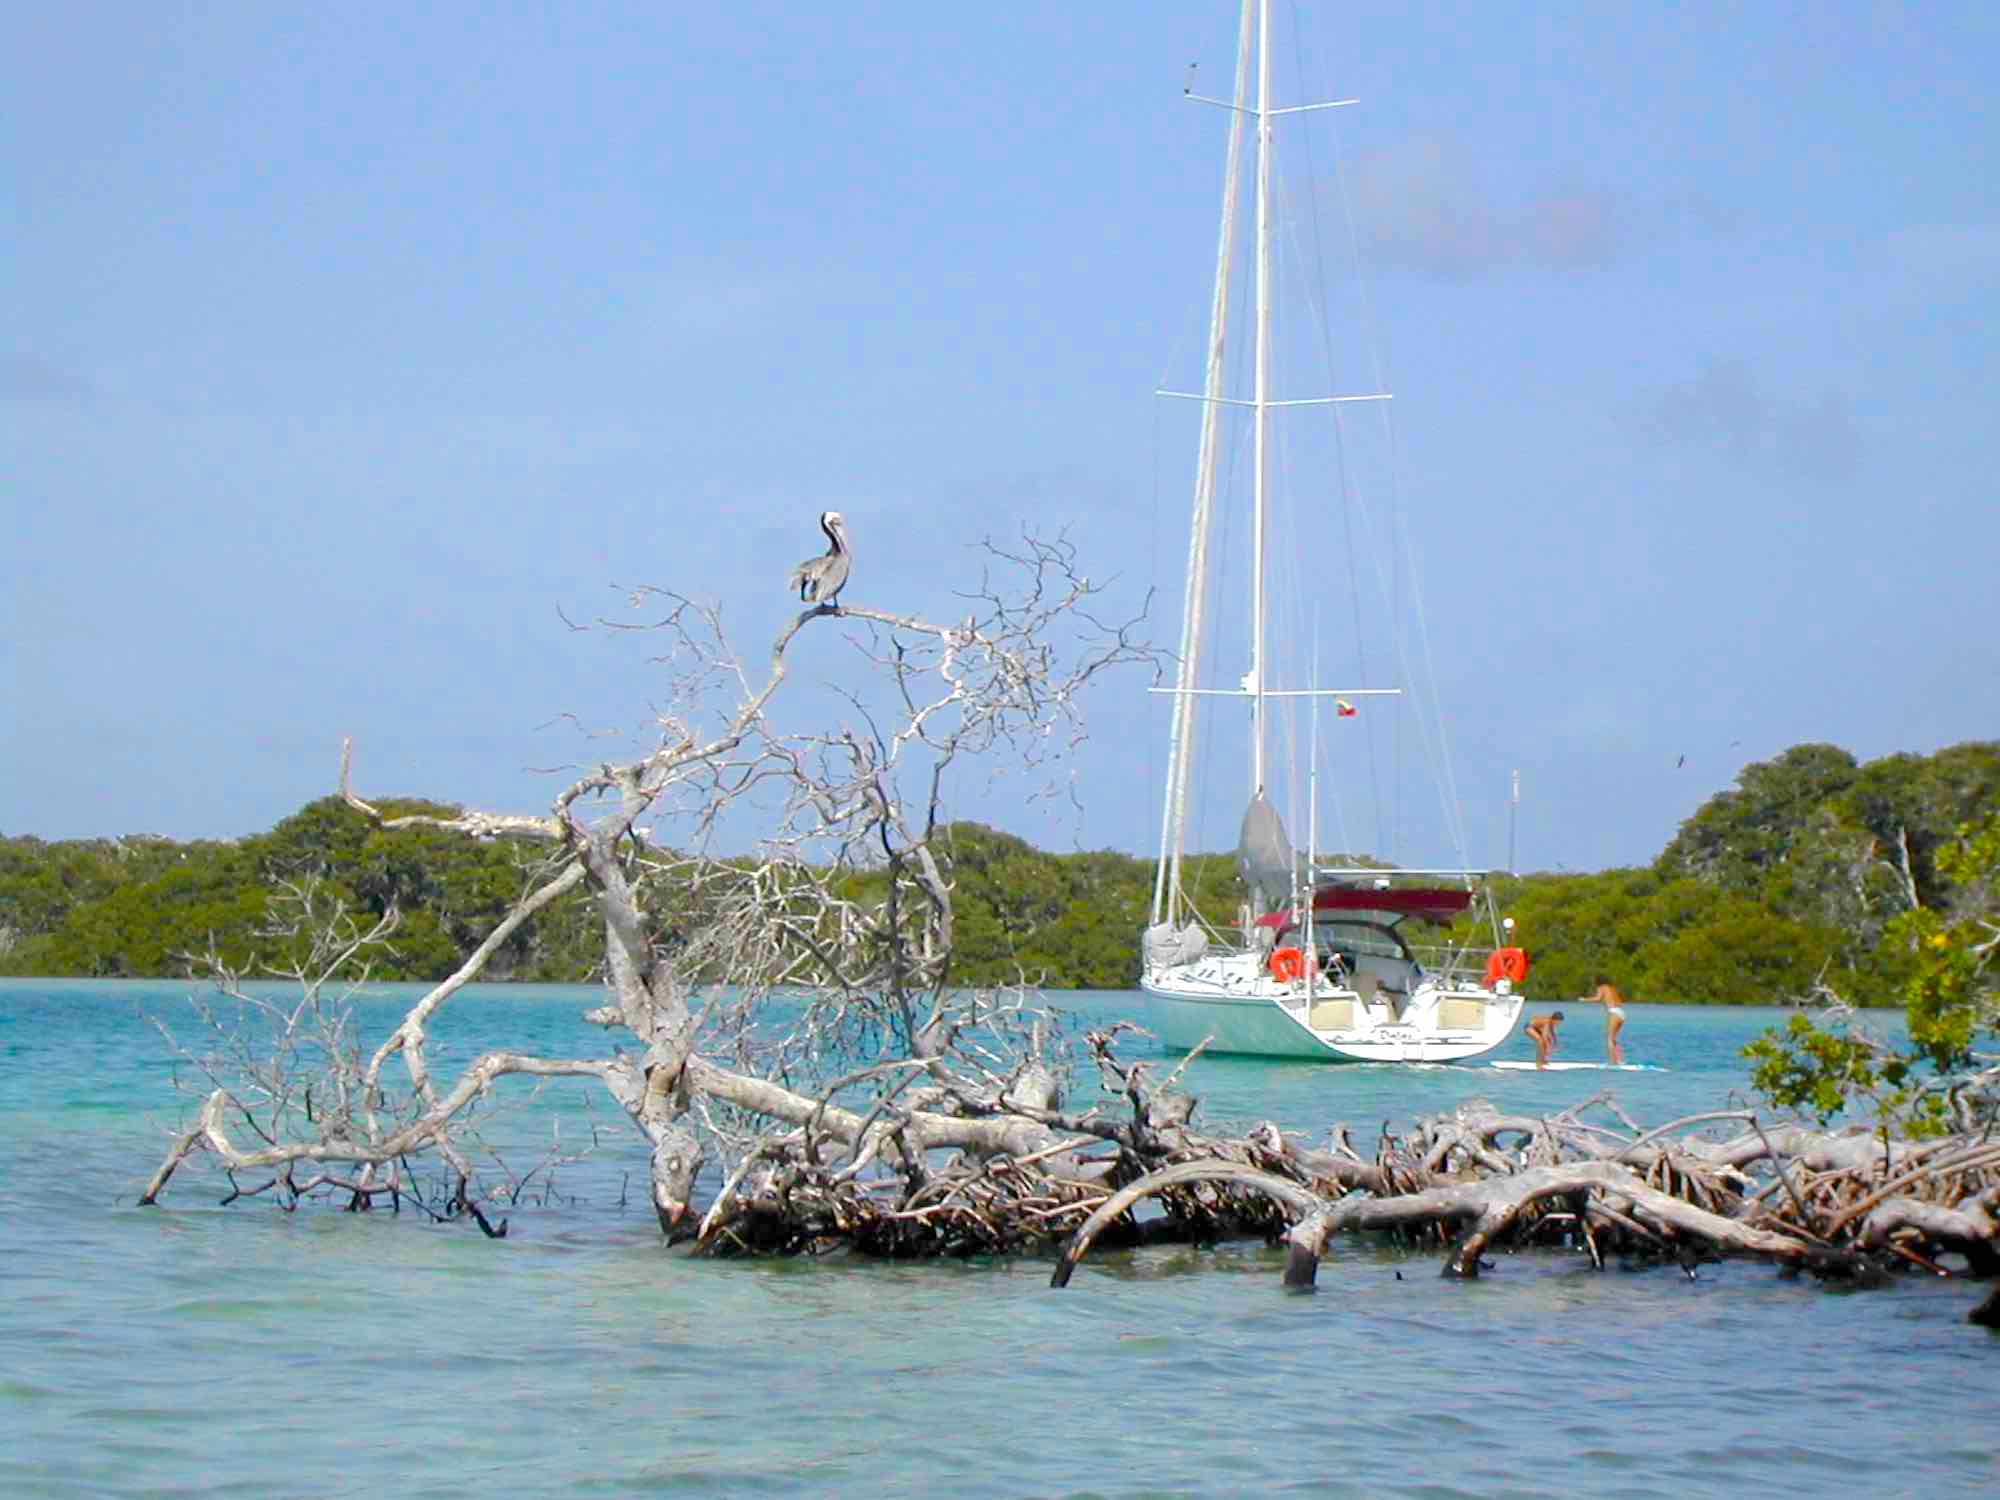 Dalai_anchoring by lush islands with interesting looking trees in Mergui_XS.jpeg